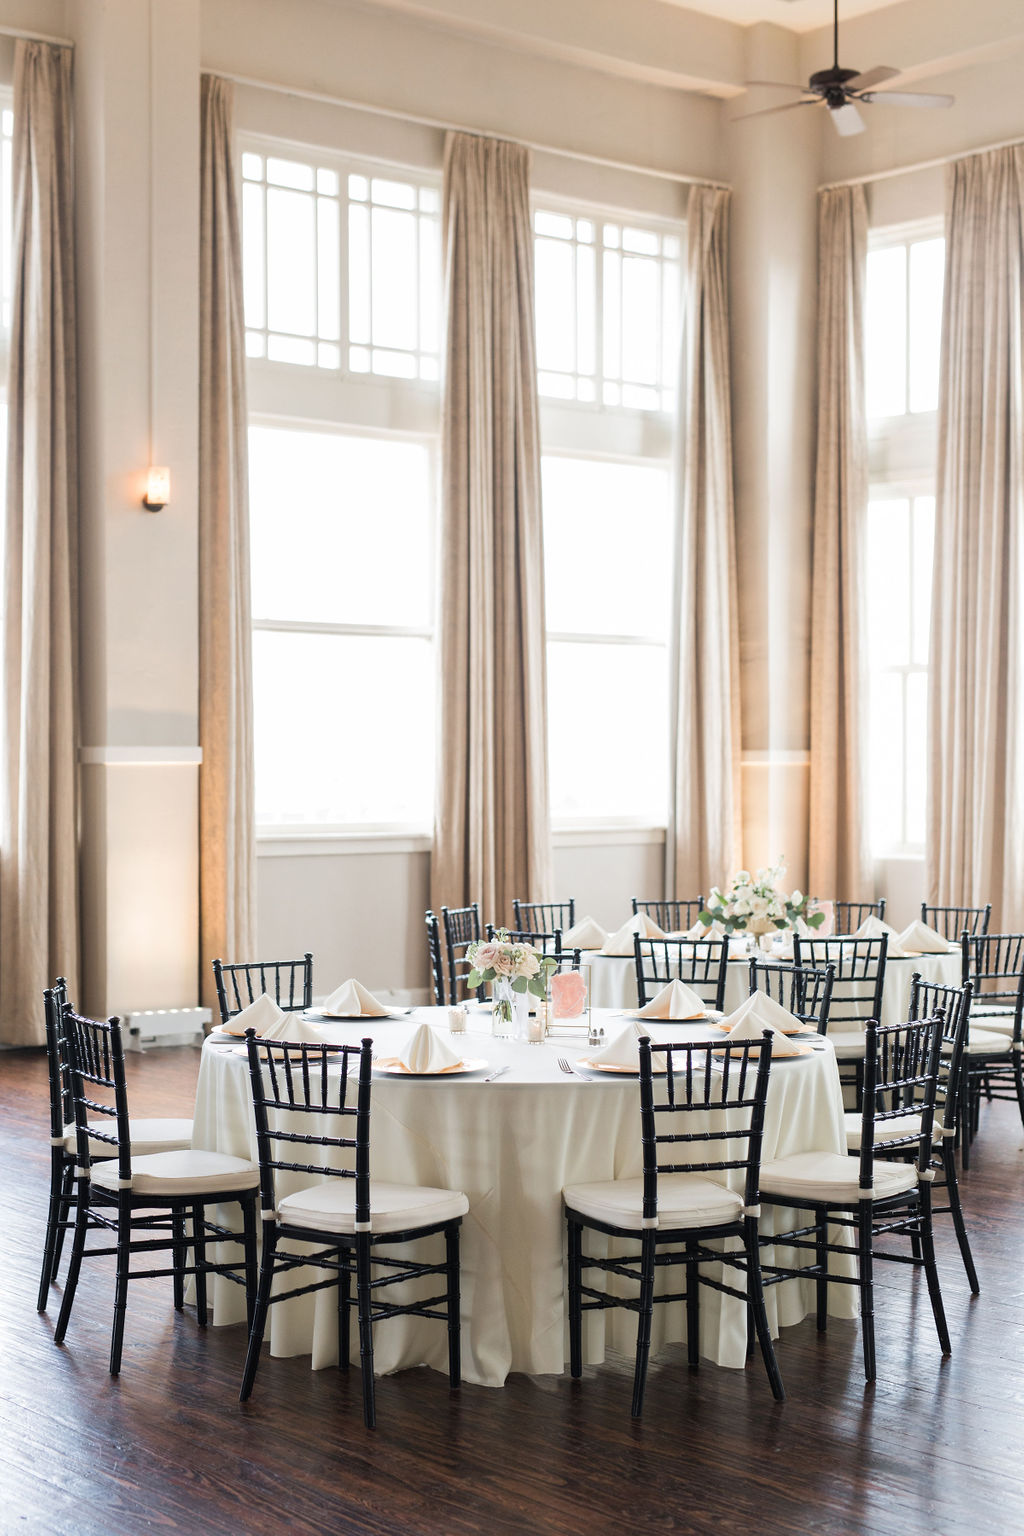 Wedding reception decor: Dusty Blue and Blush Wedding at The Room on Main featured on Alexa Kay Events!